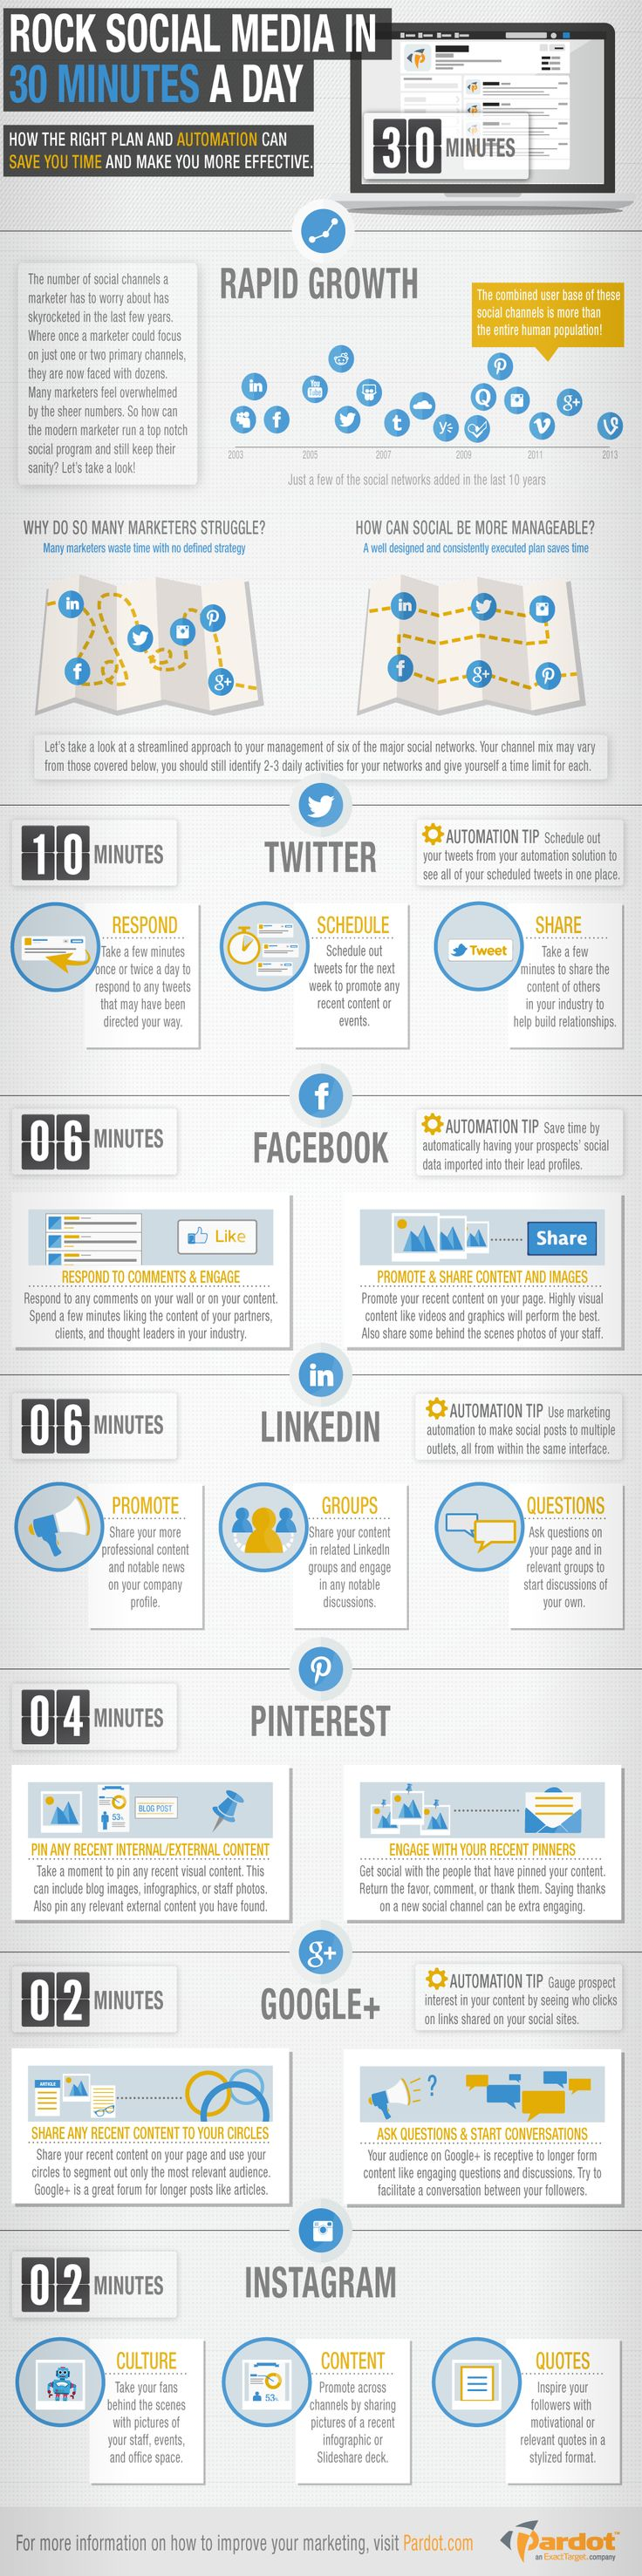 Social Media Management In 30 Minutes Per Day [Infographic]